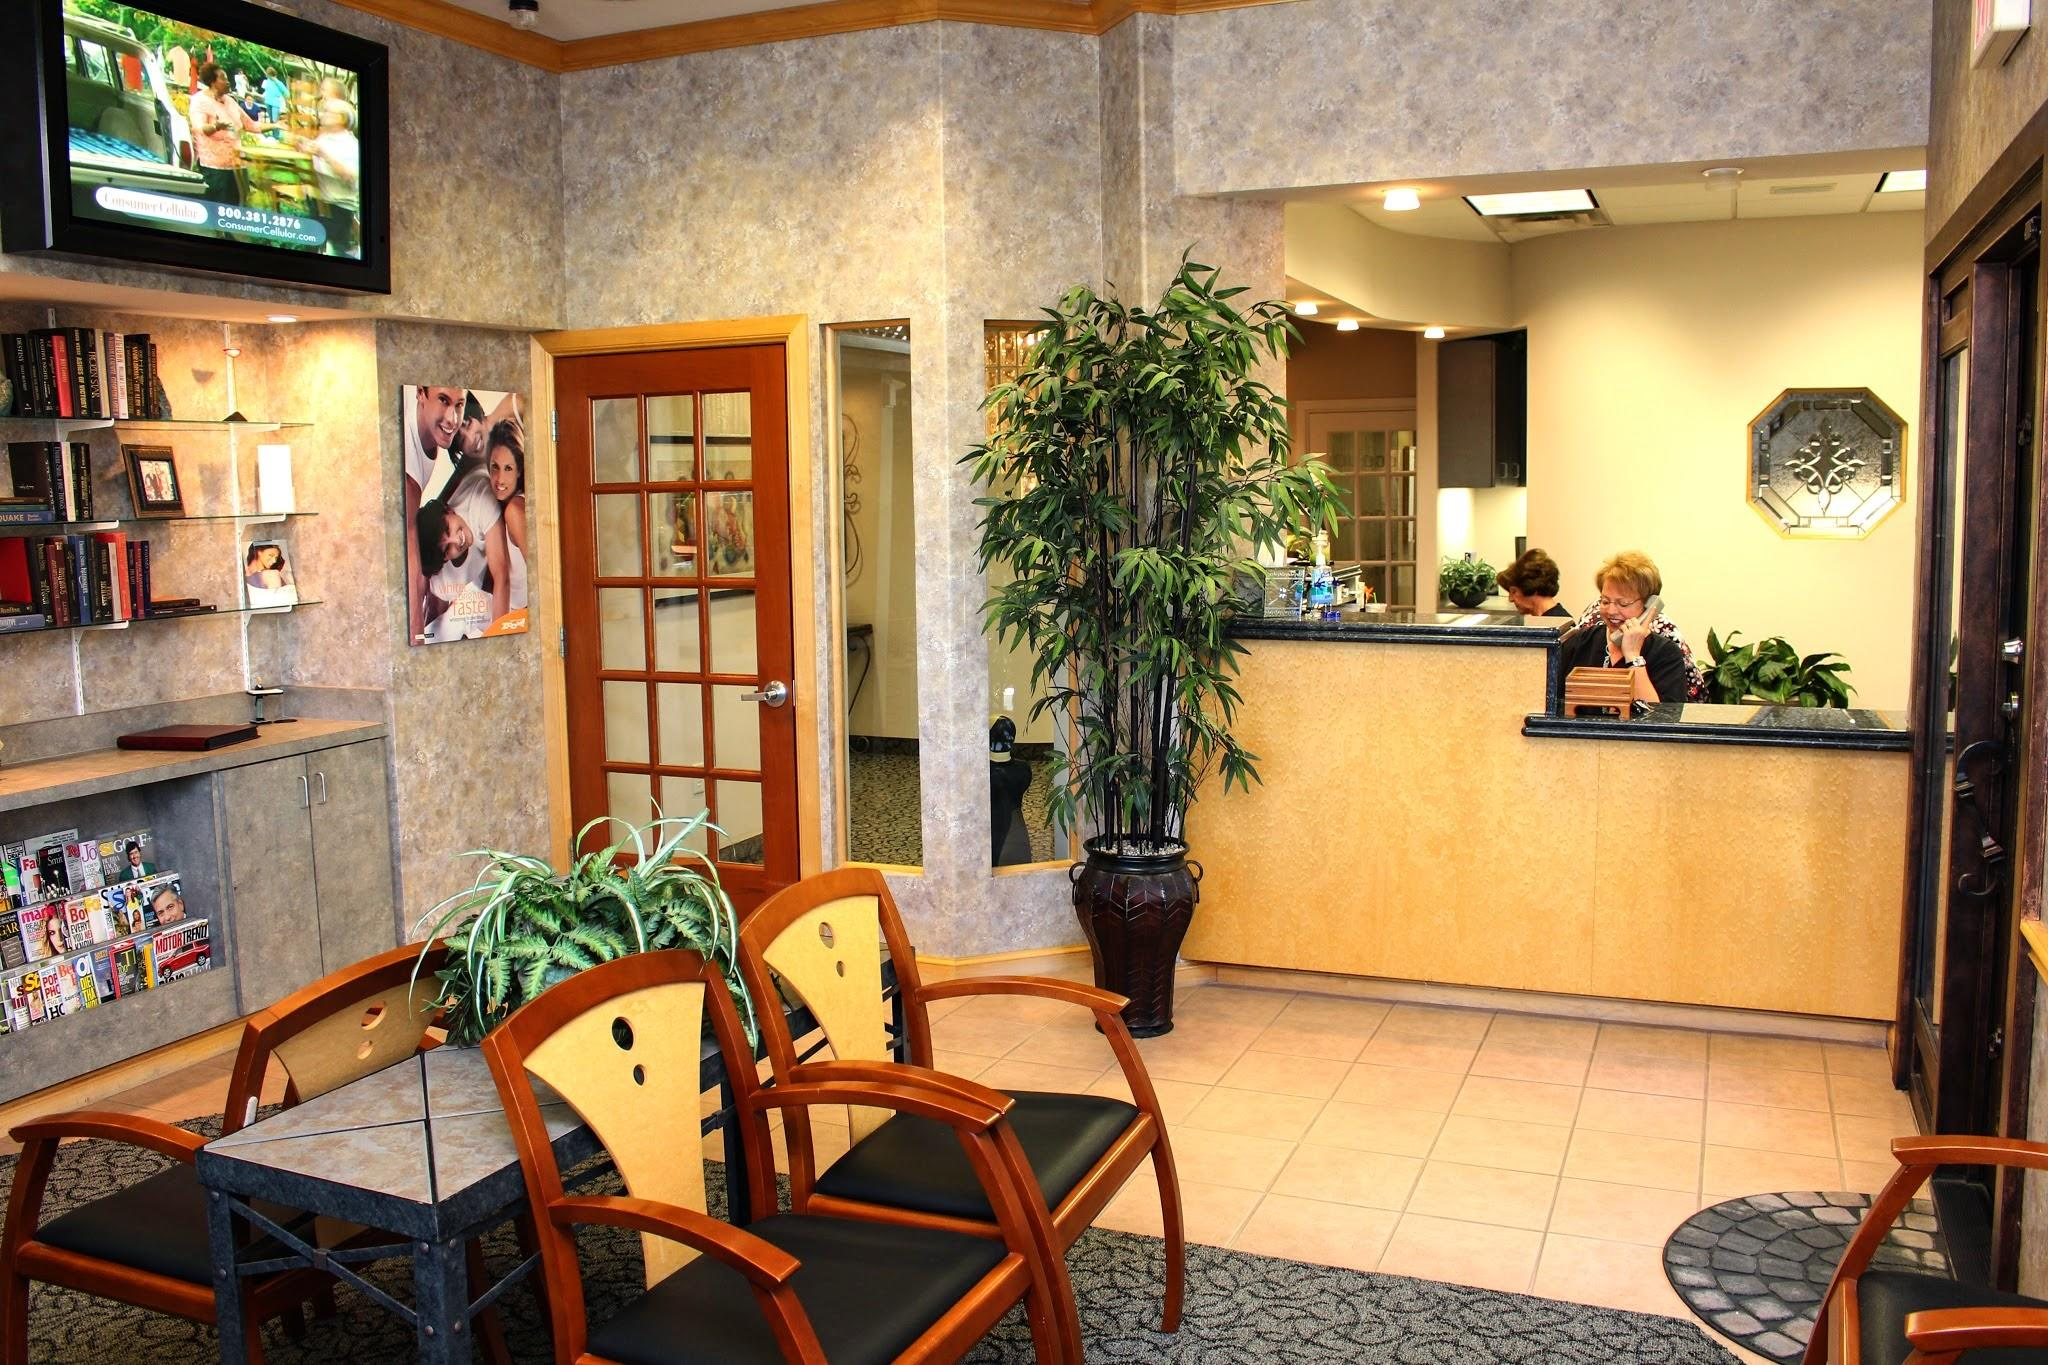 Anthony Dillard, DDS Family & Cosmetic Dentistry image 5